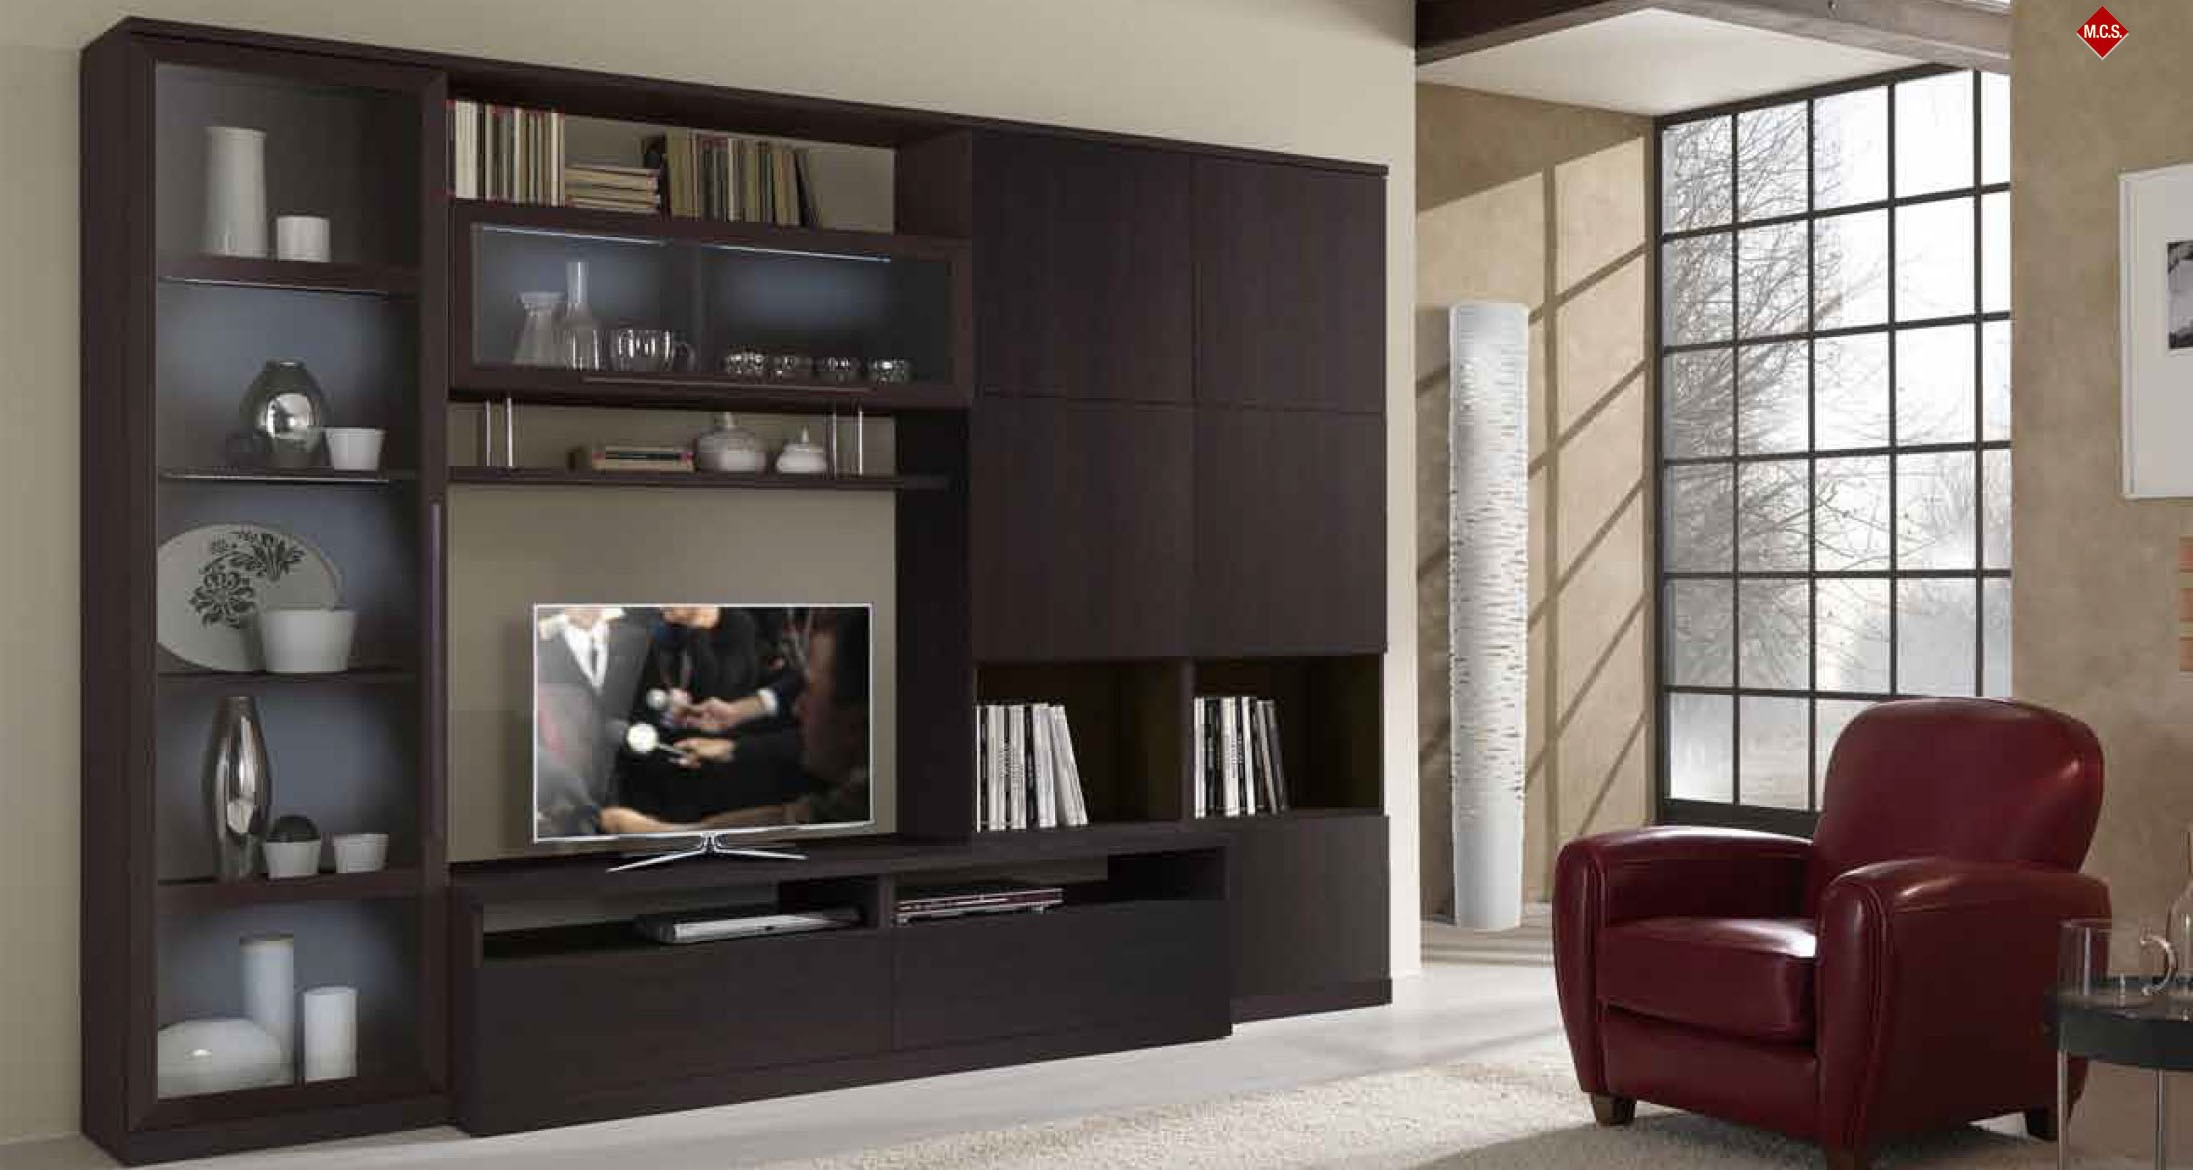 Tv Cabinet Ideas 20 Modern Tv Unit Design Ideas For Bedroom & Living Room With Pictures